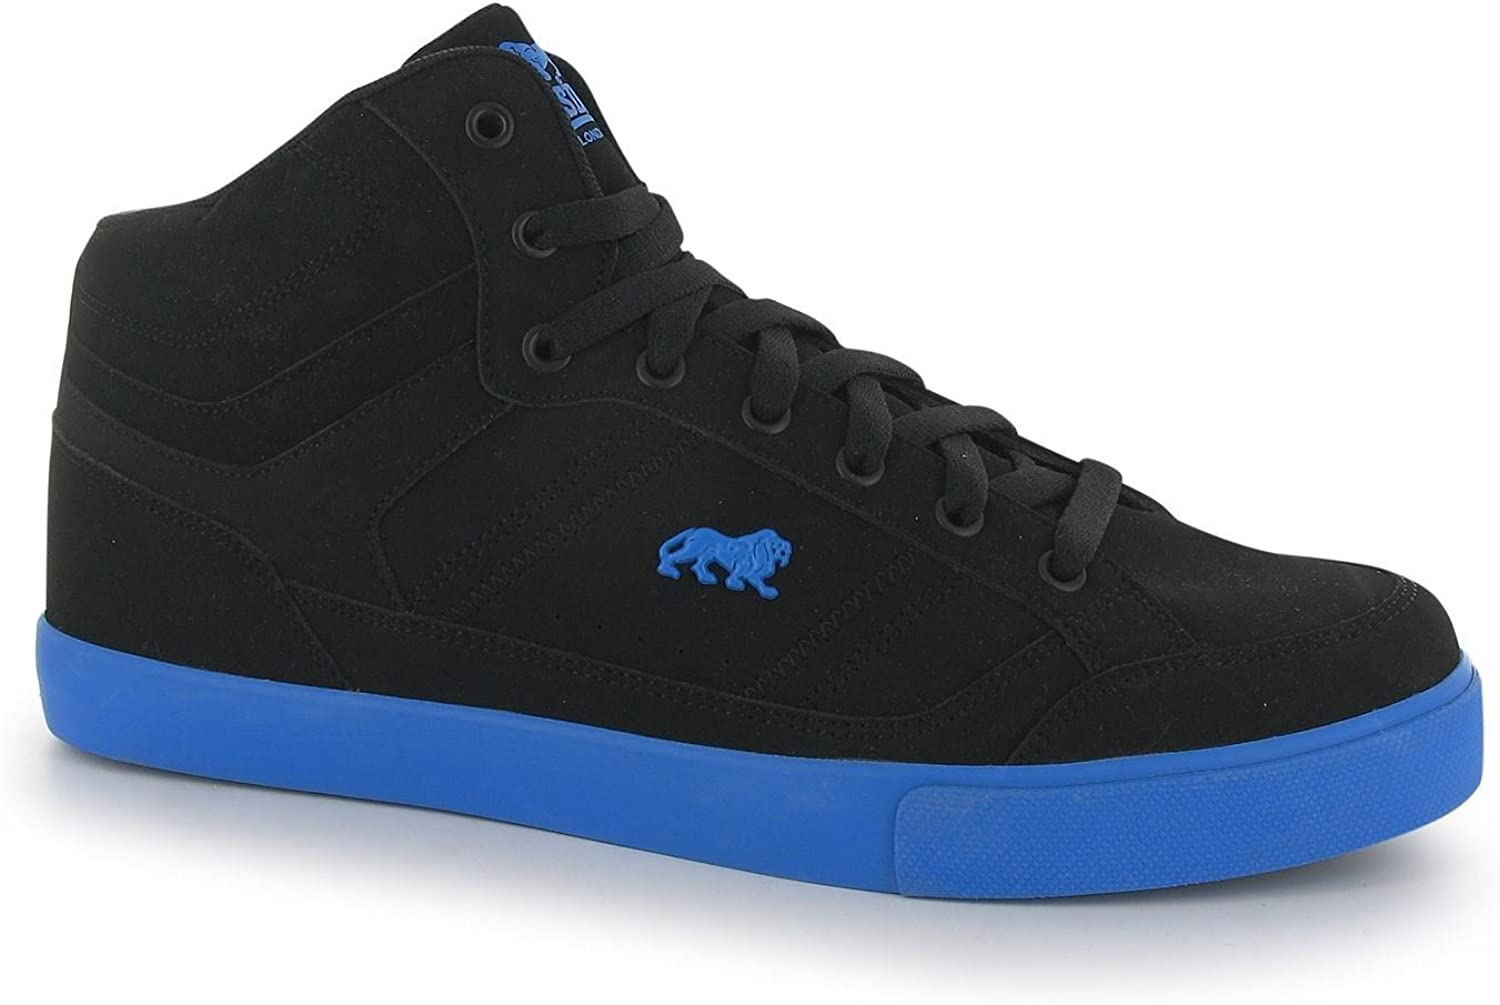 Lonsdale Canons Trainers Mens Black bluee Casual Sneakers shoes Footwear